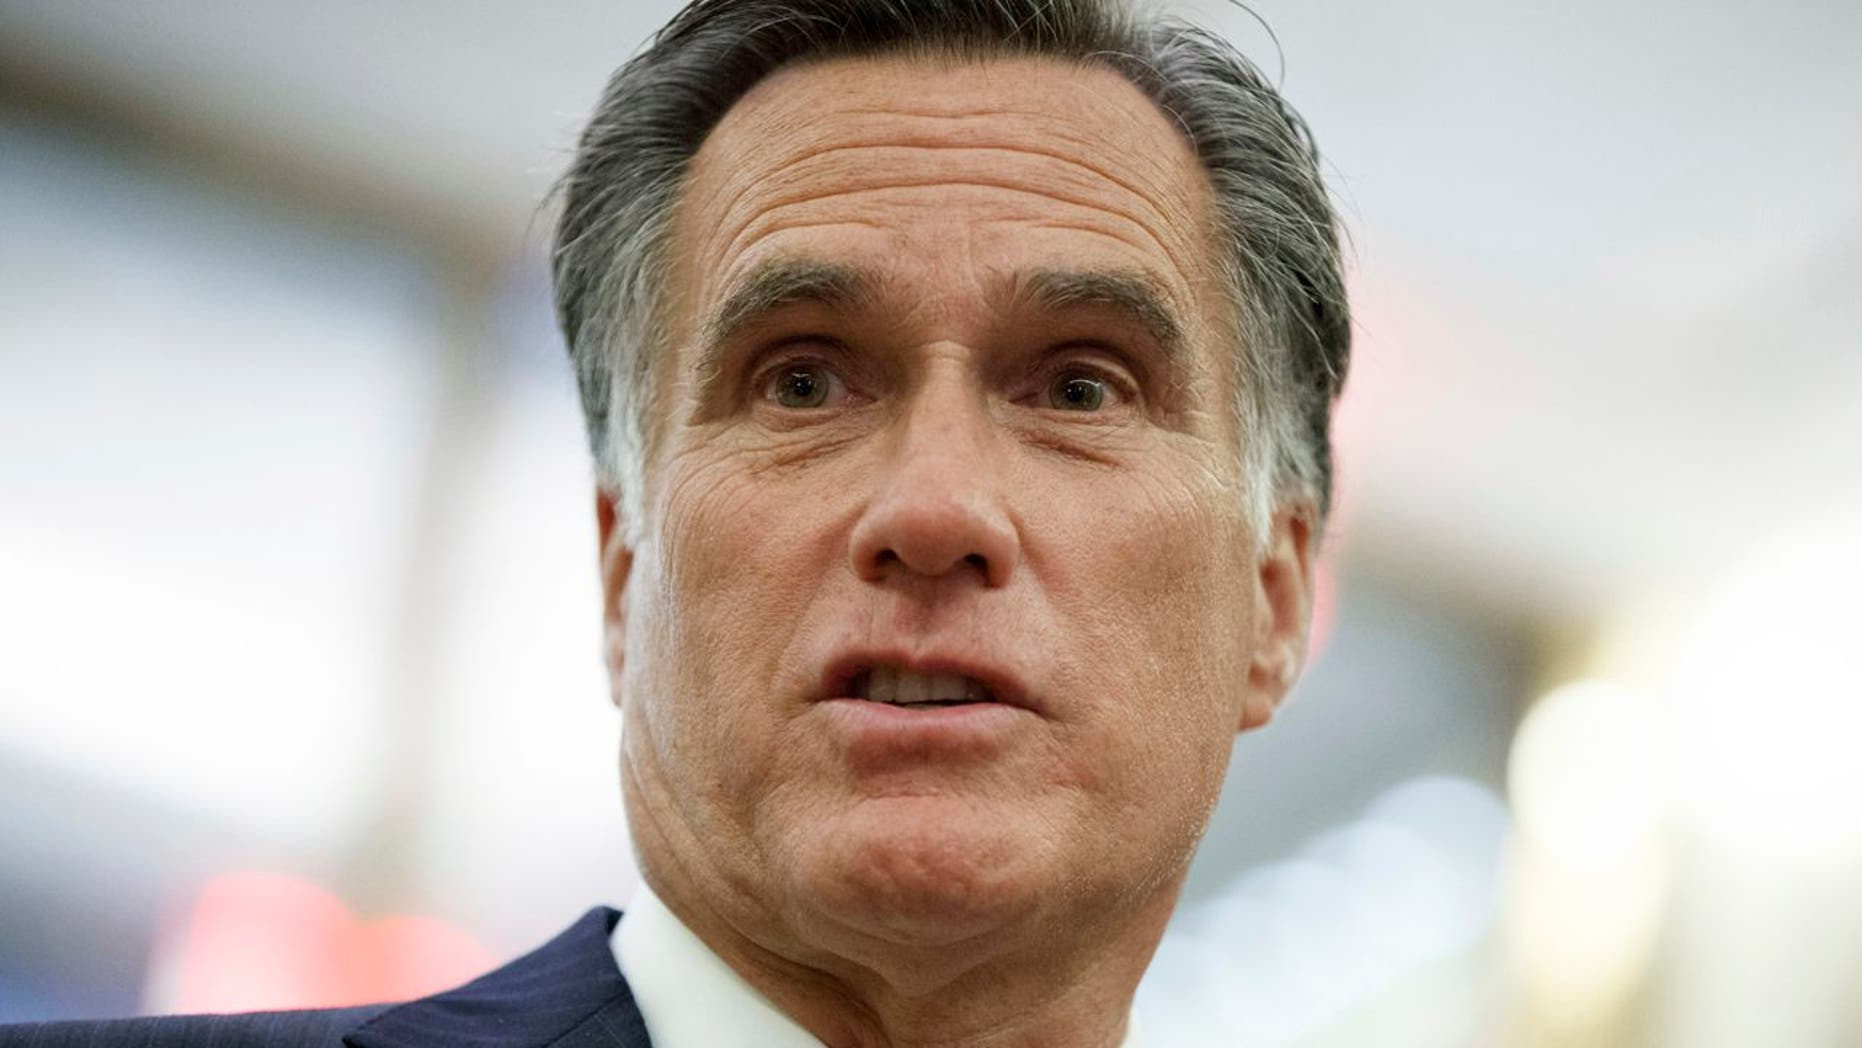 FILE - In this Tuesday, Nov. 29, 2016 file photo, former Republican presidential nominee Mitt Romney talks with reporters in New York.  Former Democratic Vice President Joe Biden is encouraging former Republican presidential candidate Mitt Romney to run for a senate seat in Utah currently held by Orrin Hatch if the senator decides to retire next year. Biden made the comment to Romney Friday, June 9, 2017 at a luxury resort in Utah, where Romney was hosting an annual invitation-only business and politics summit.. (AP Photo/Evan Vucci, File)